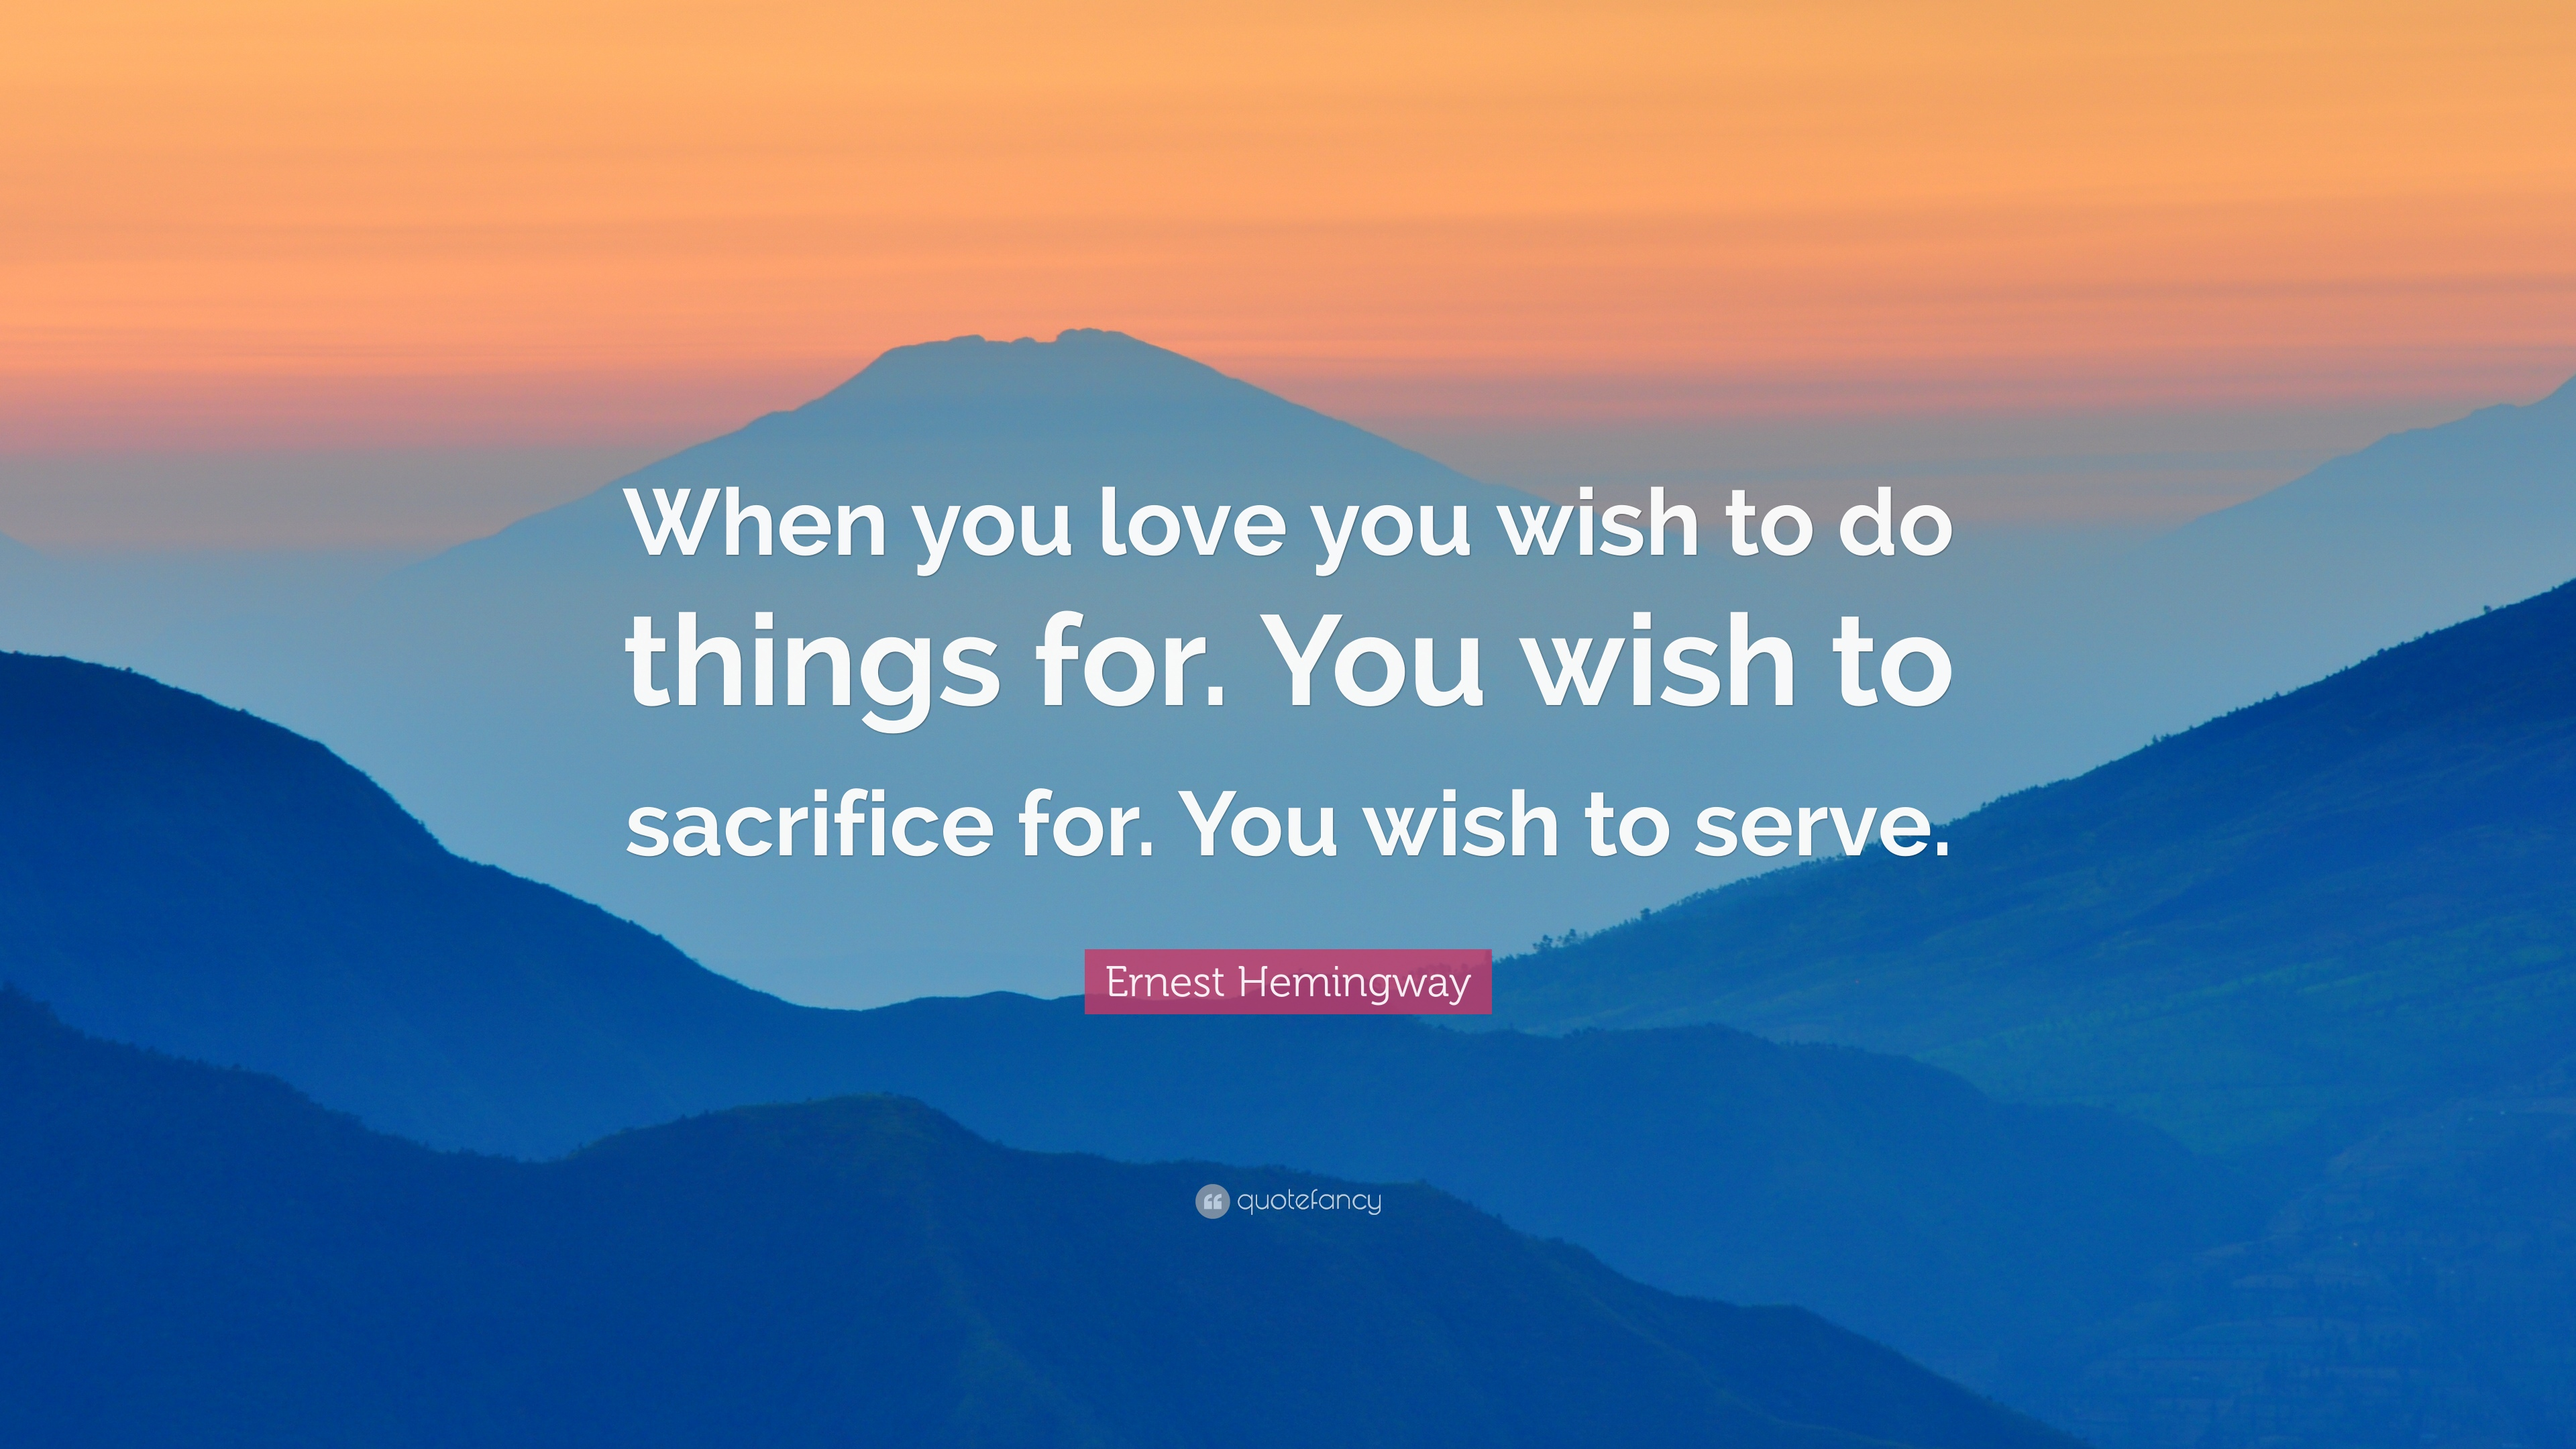 Ernest Hemingway Quote When You Love You Wish To Do Things For